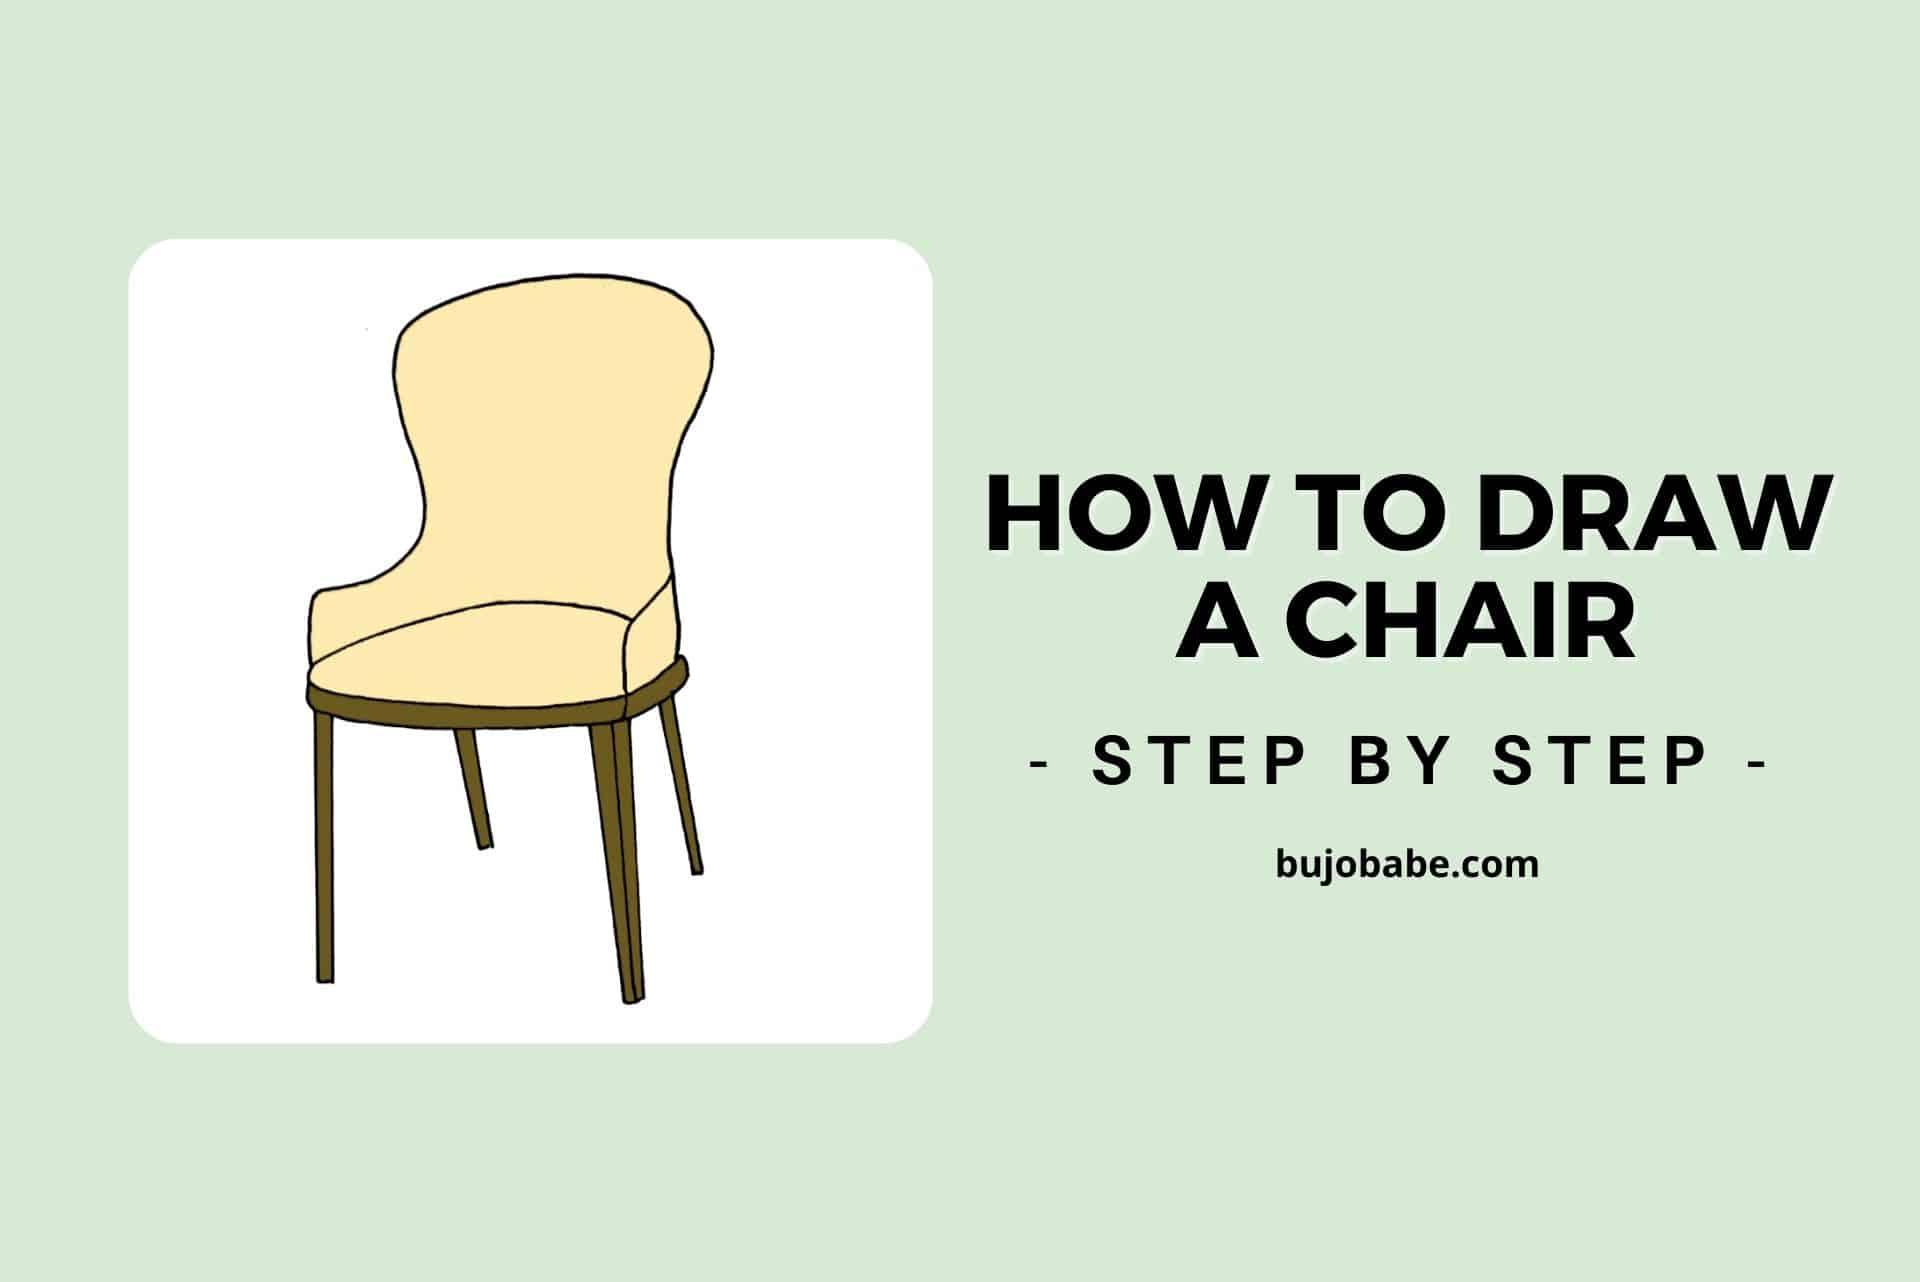 how to draw a chair step by step